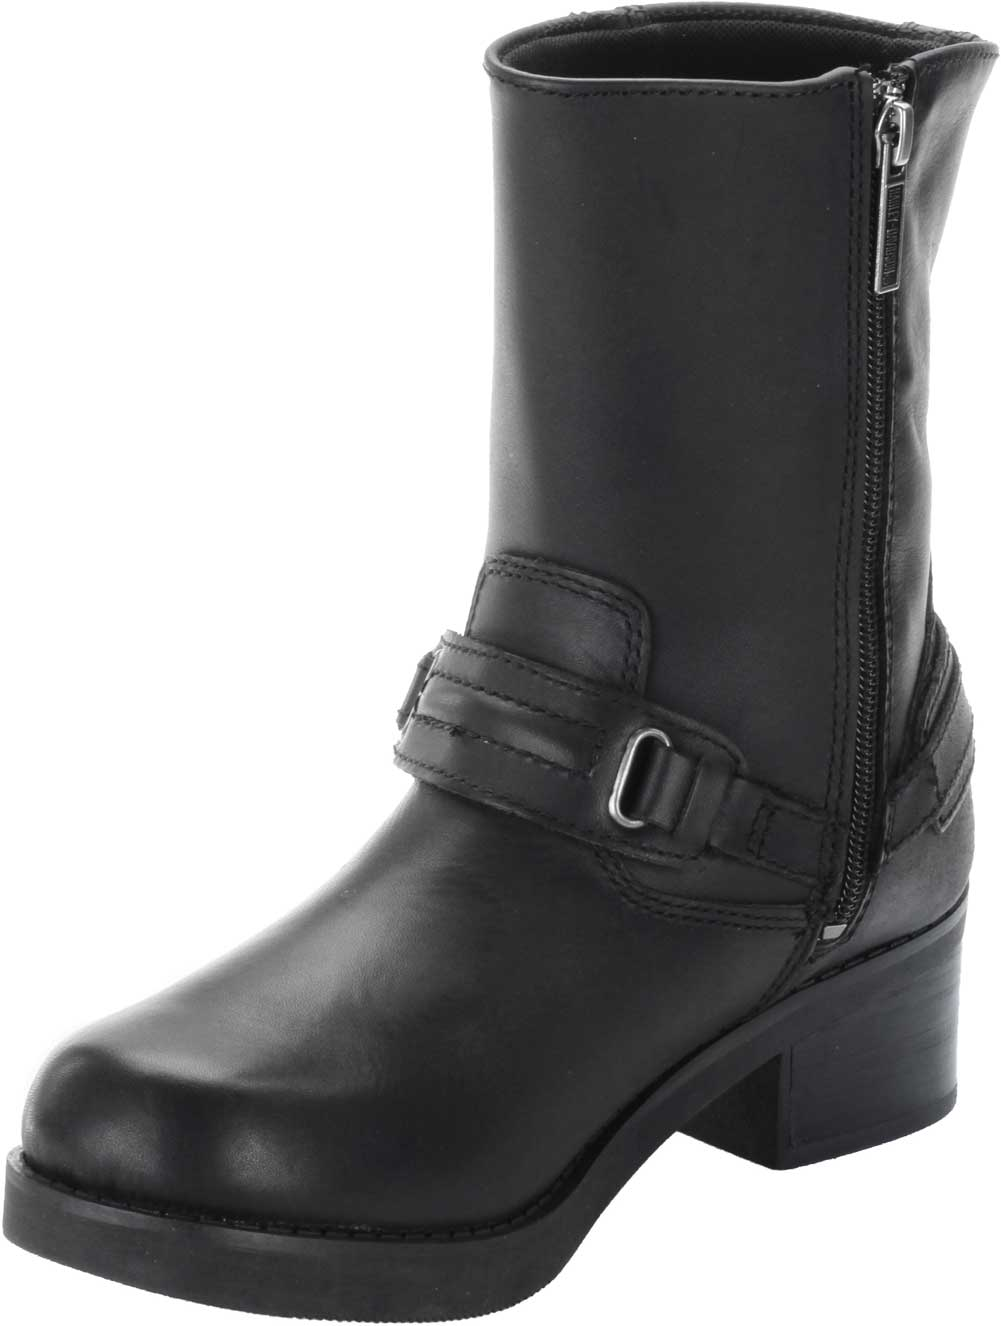 Find 2 inch heel women's boots at ShopStyle. Shop the latest collection of 2 inch heel women's boots from the most popular stores - all in one place.